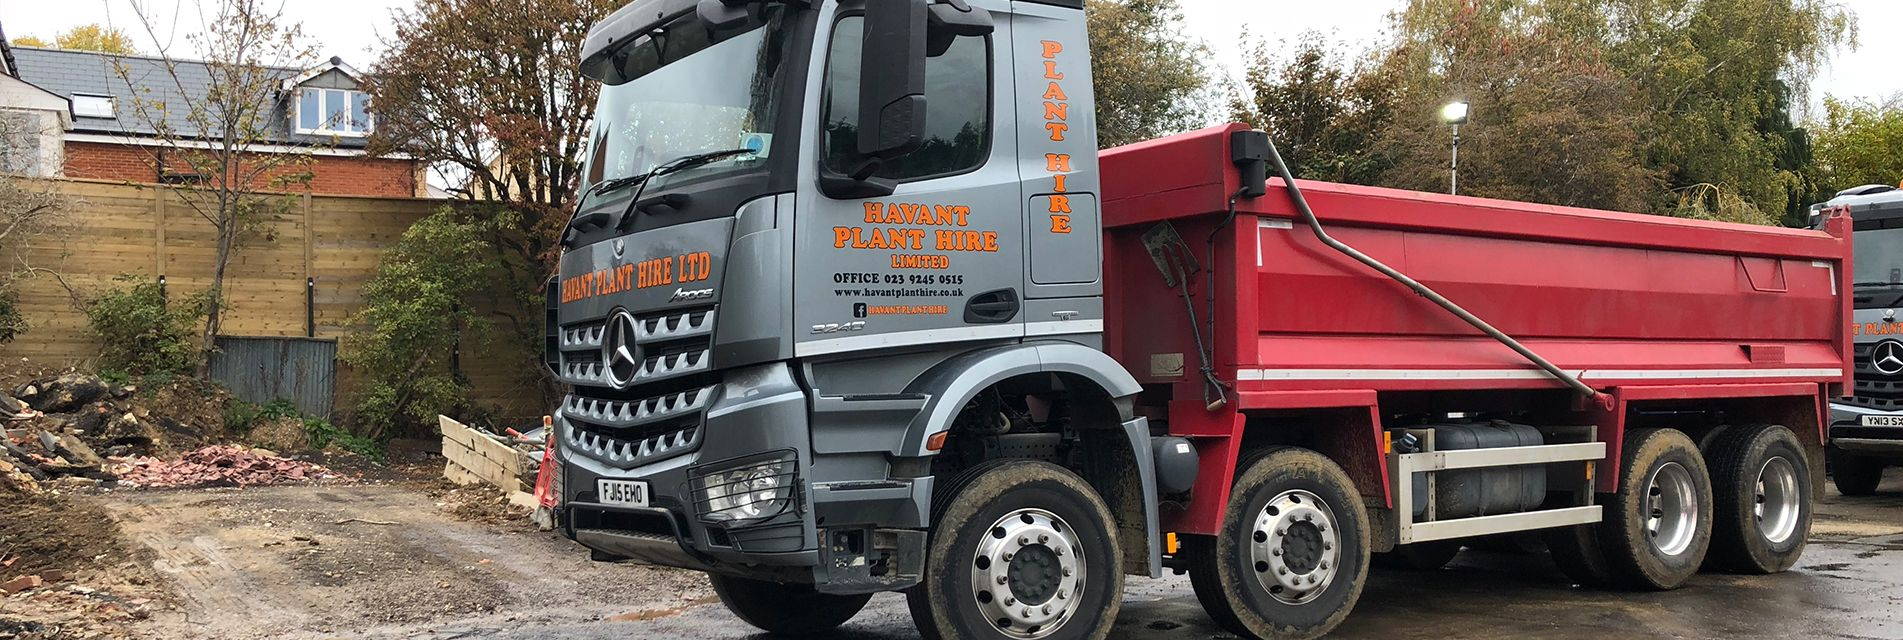 tipper hire in Bognor